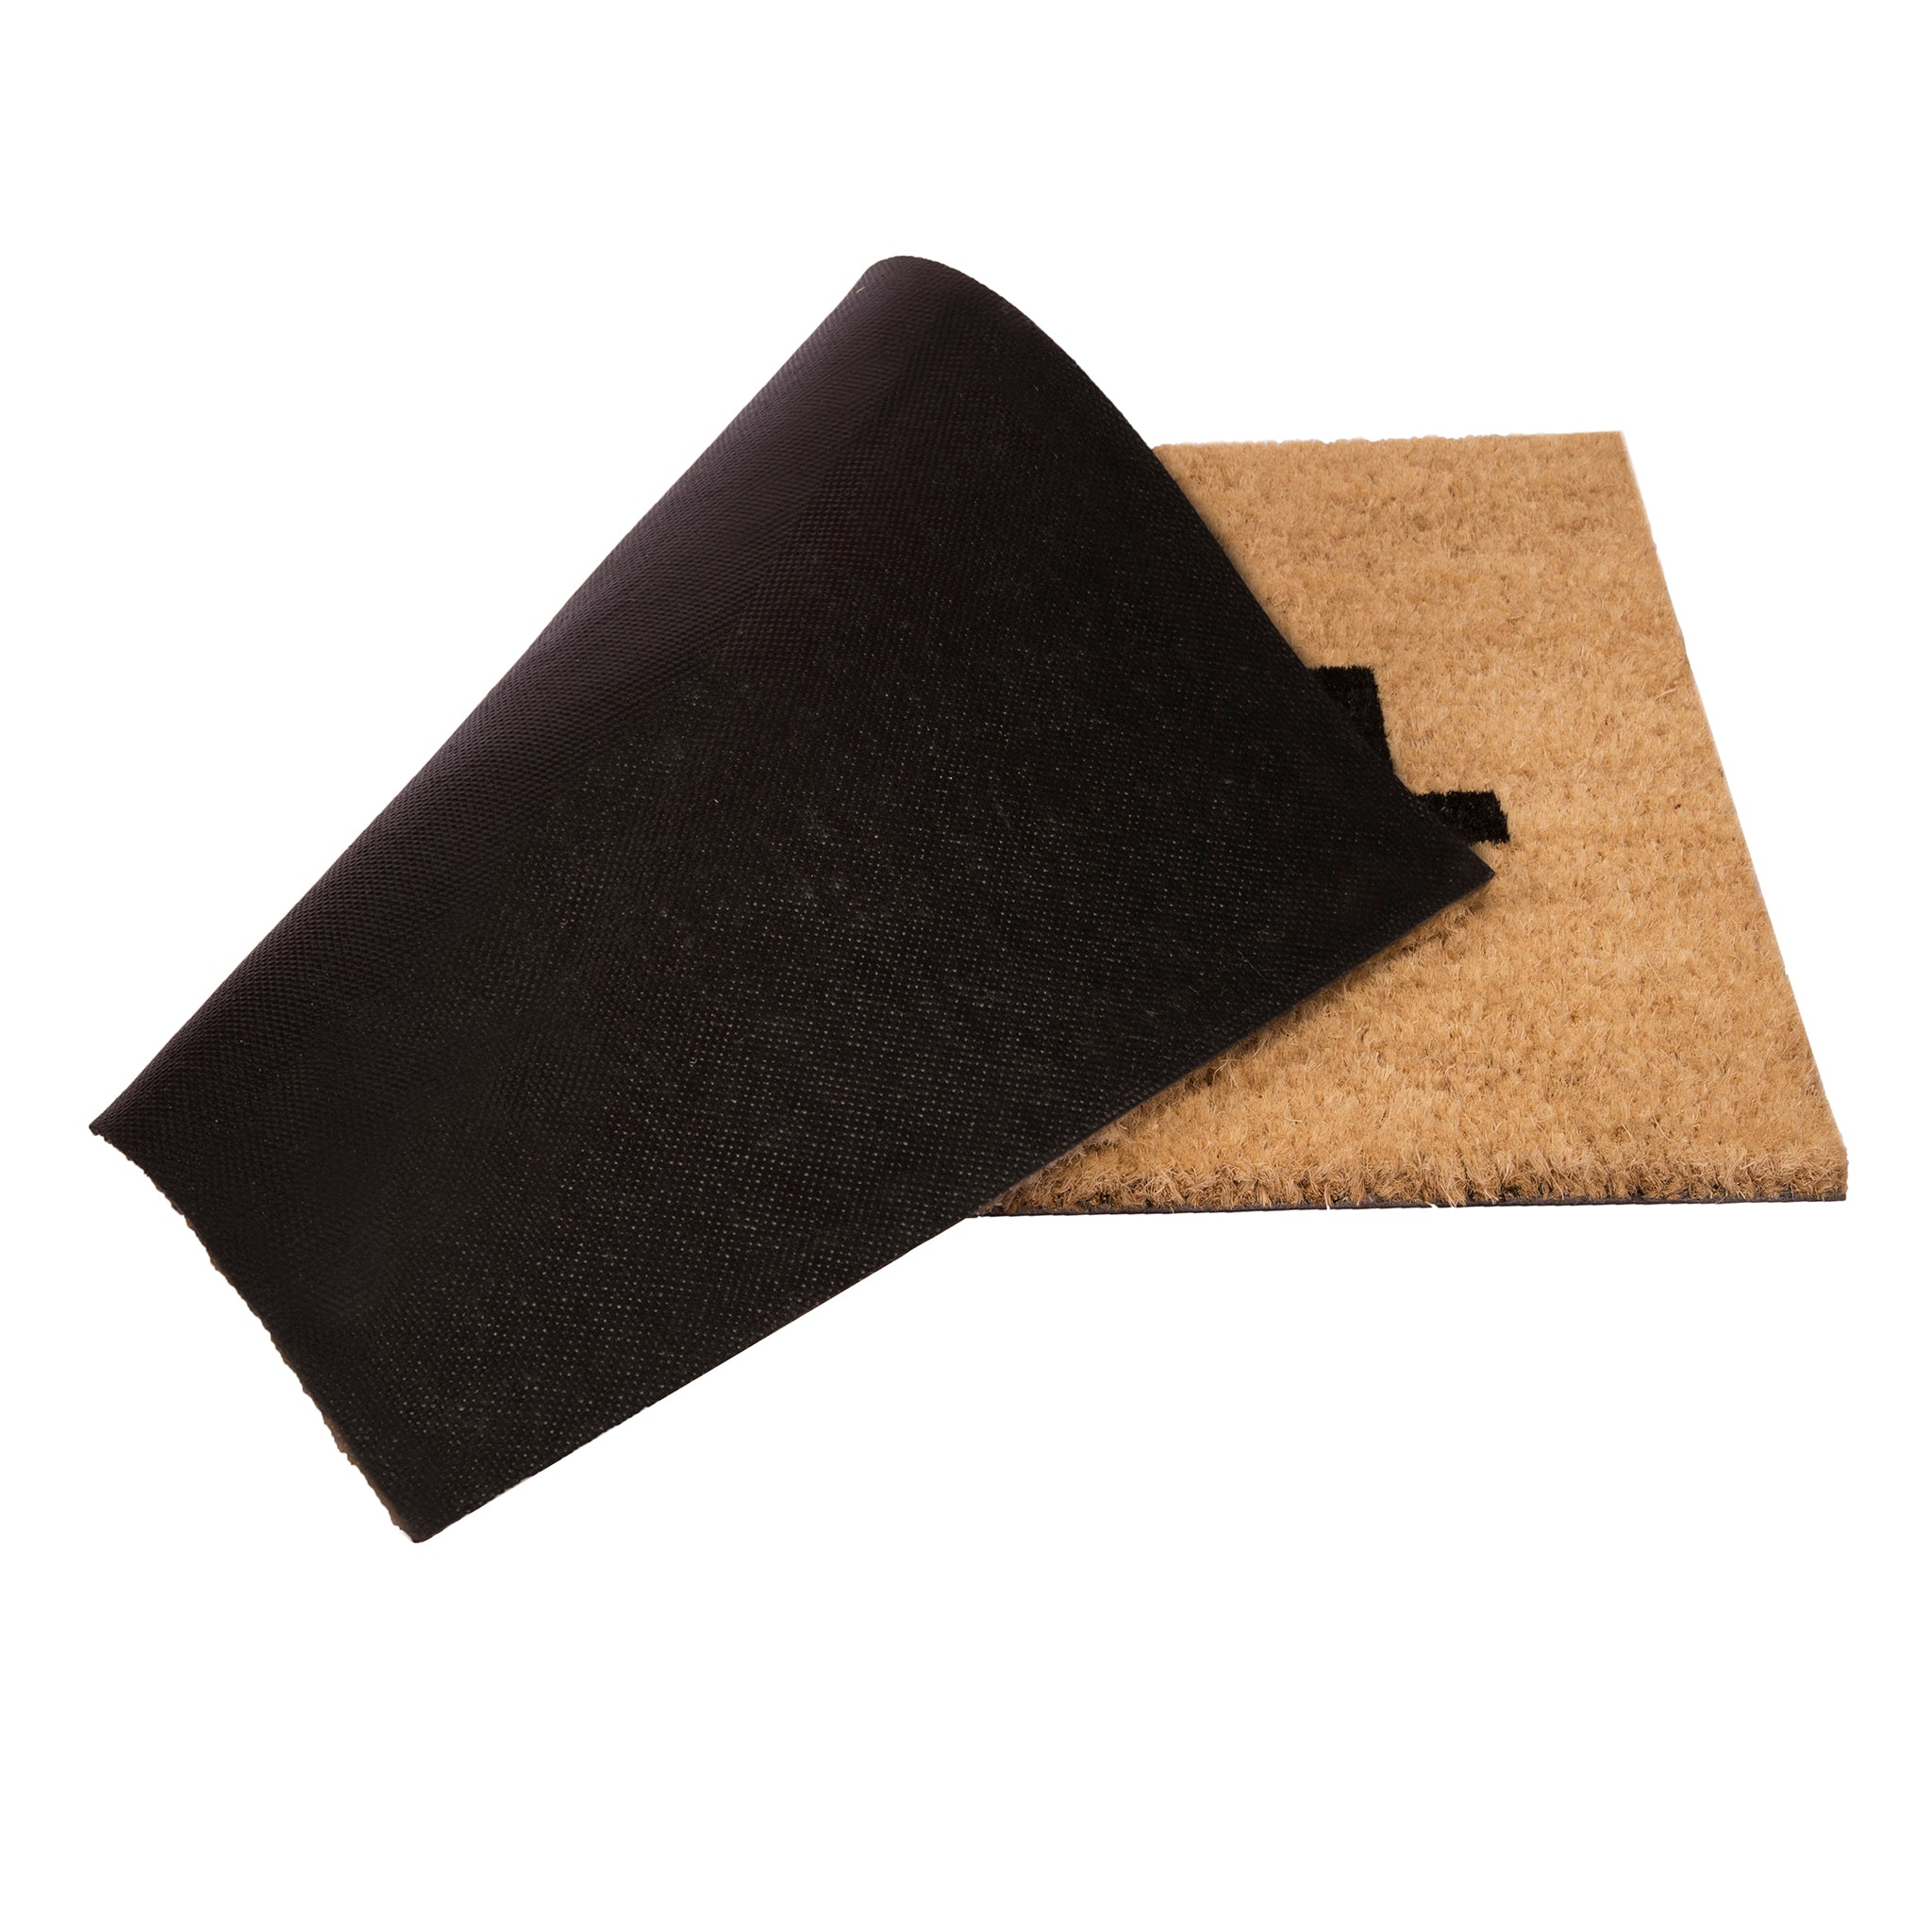 Buy Doormat Online In india